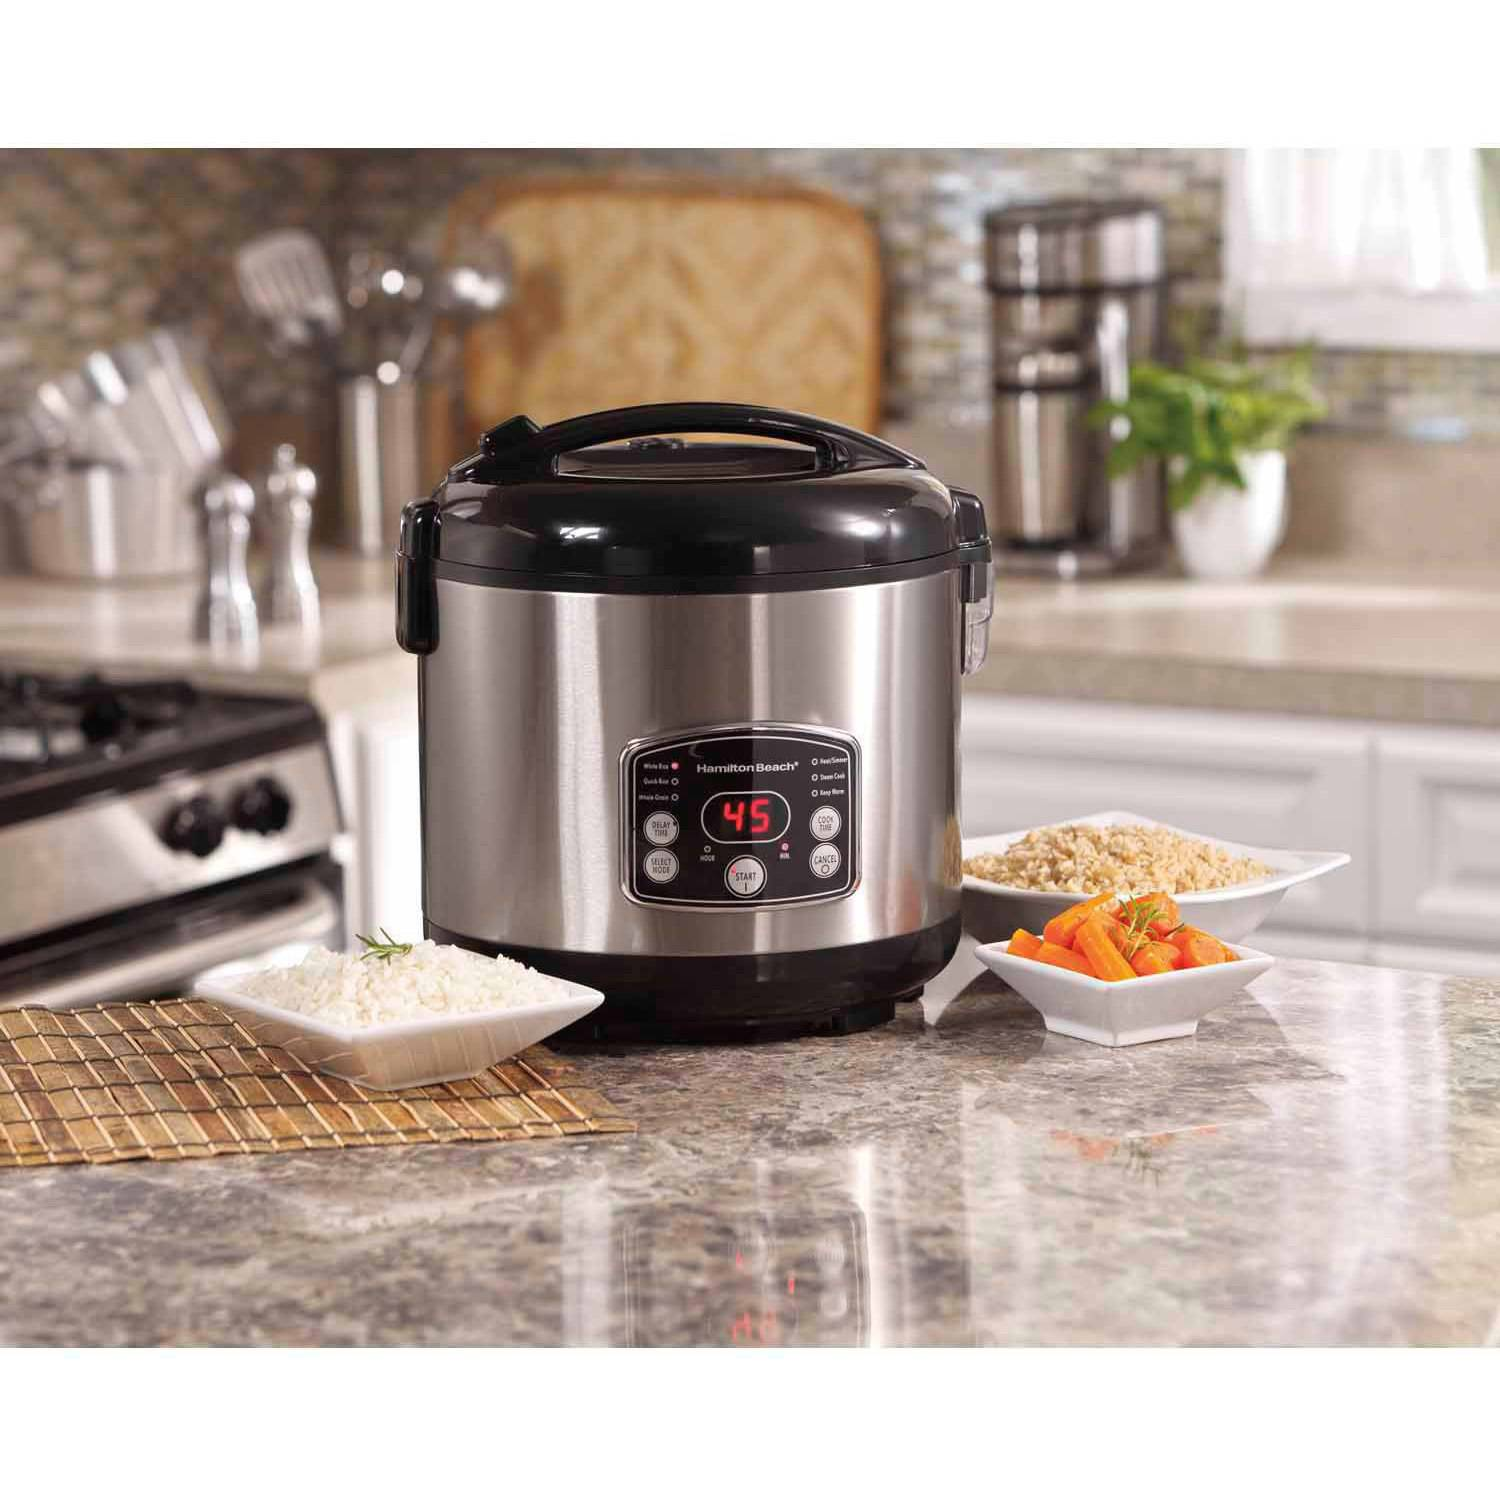 Hamilton Beach 5 Quart Rice Steamer Cooker | Model# 37541